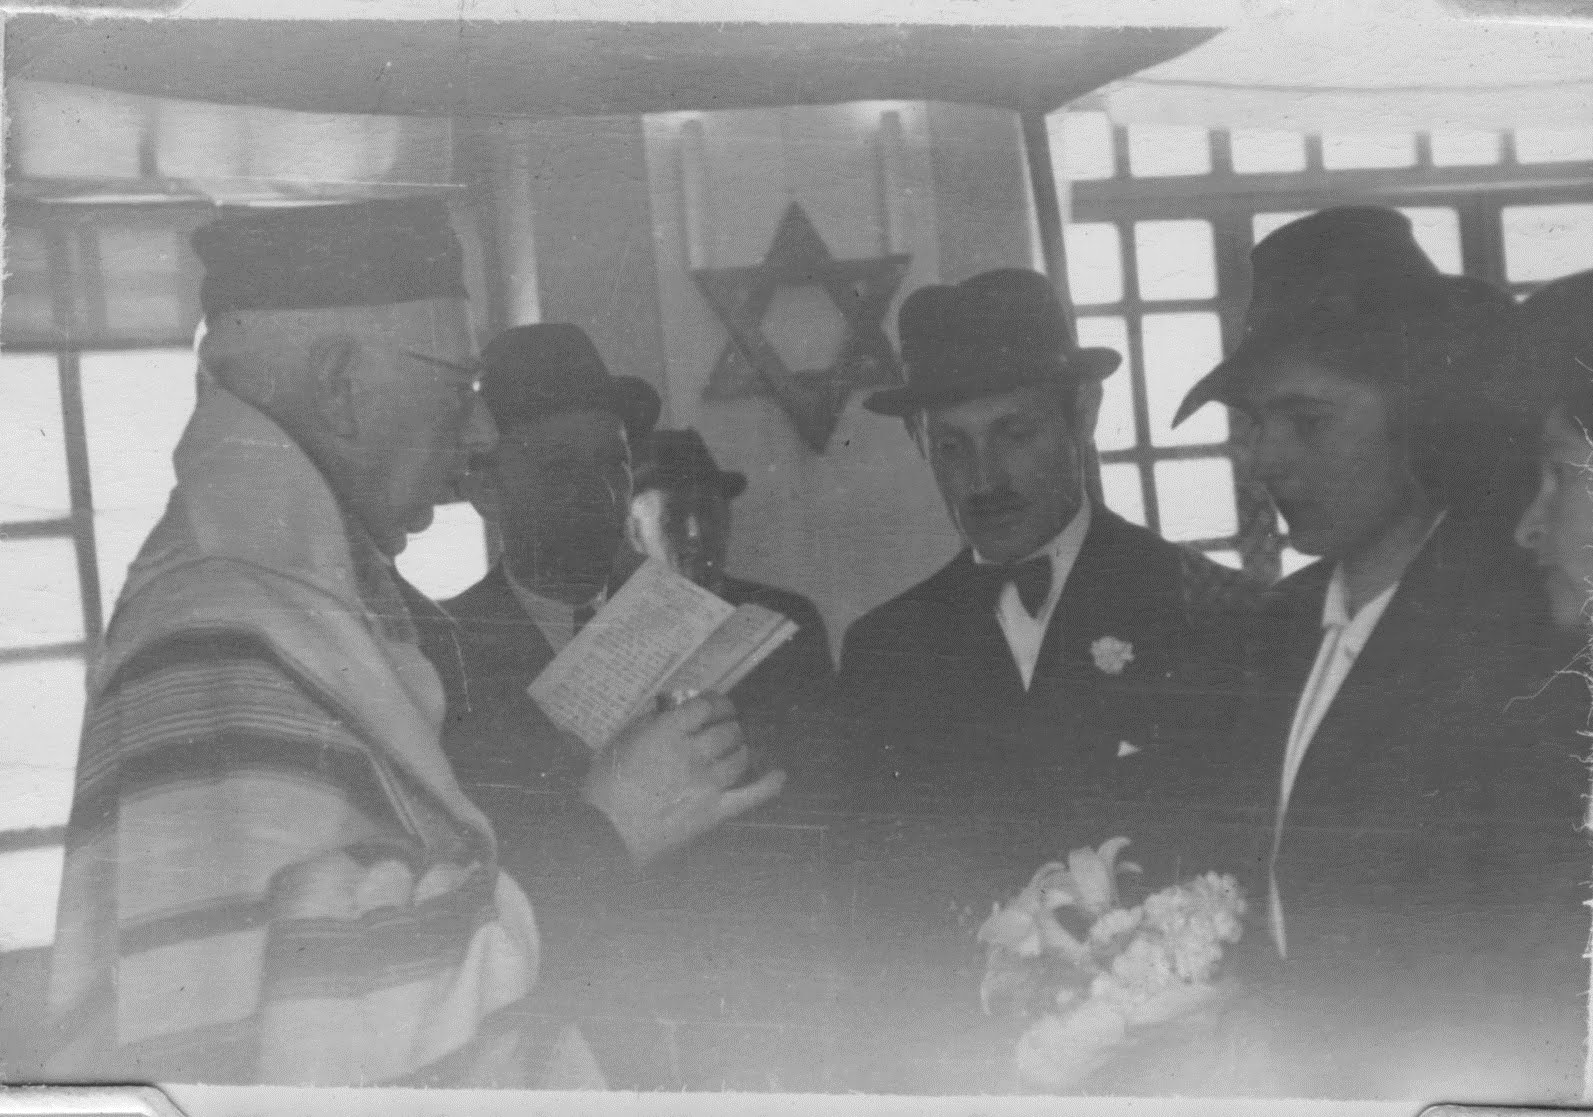 Salomon Neumann officiating at a wedding in Quito, Ecuador -- 1944